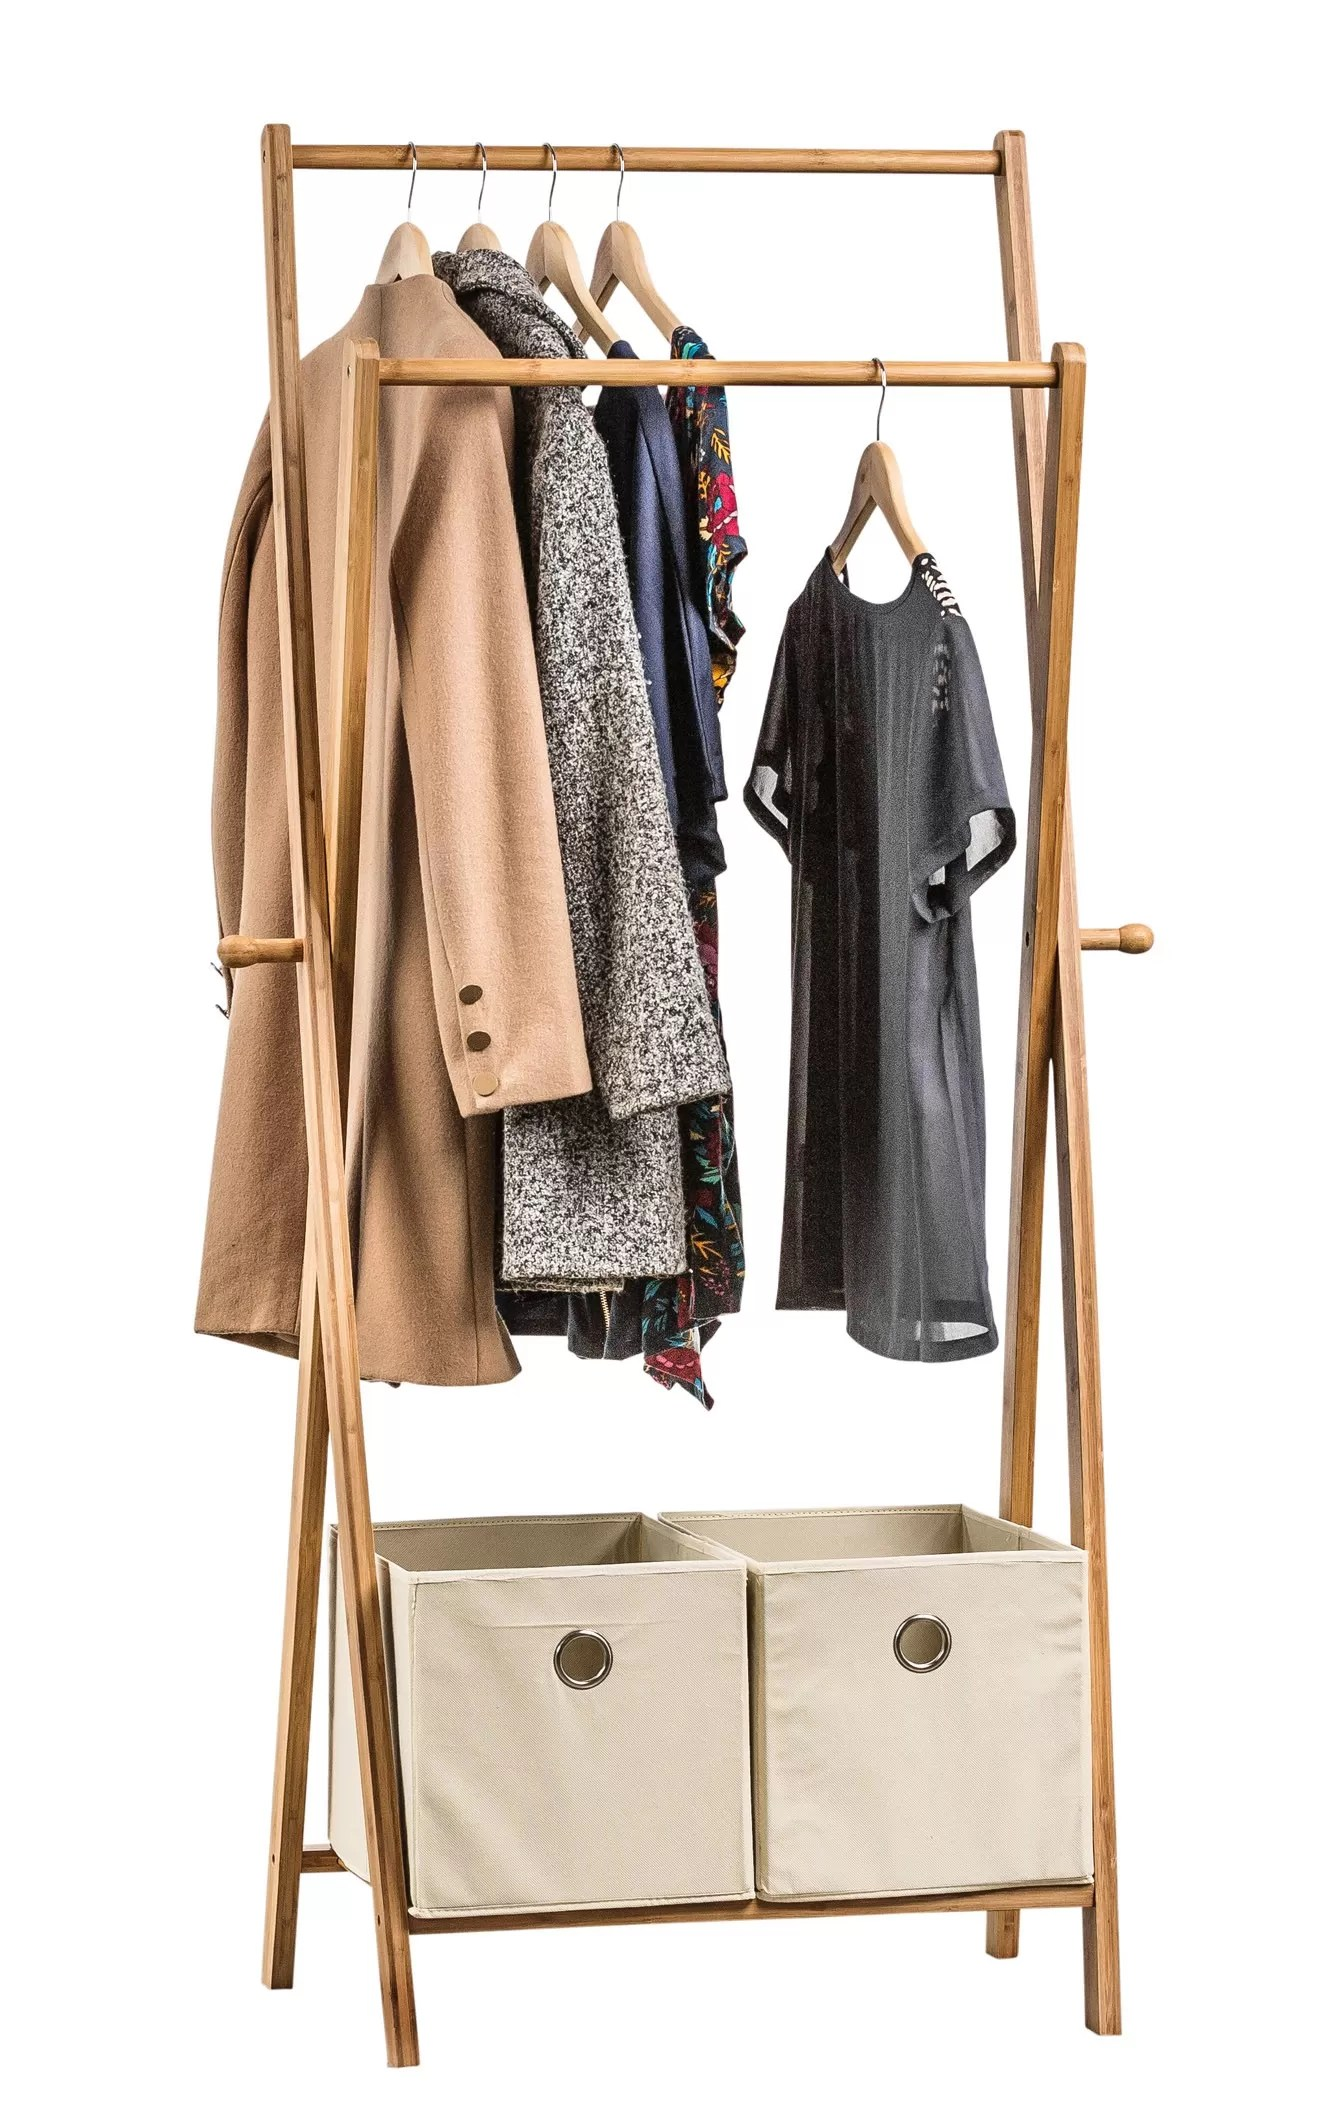 Garment Rack With Drawers From Storage Box